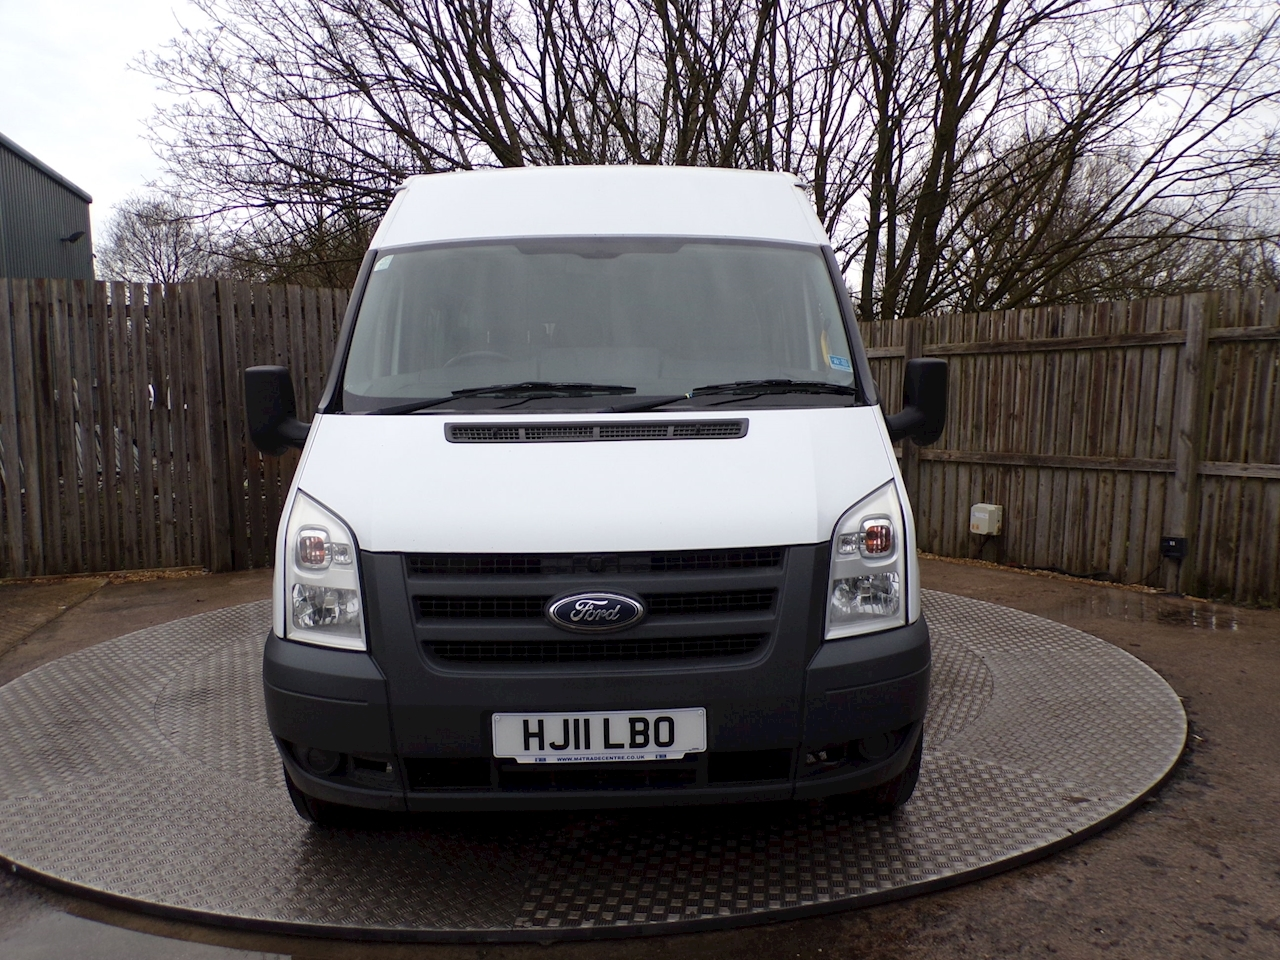 Ford Transit 15 Seater 3.5T Ideal Camper Conversion